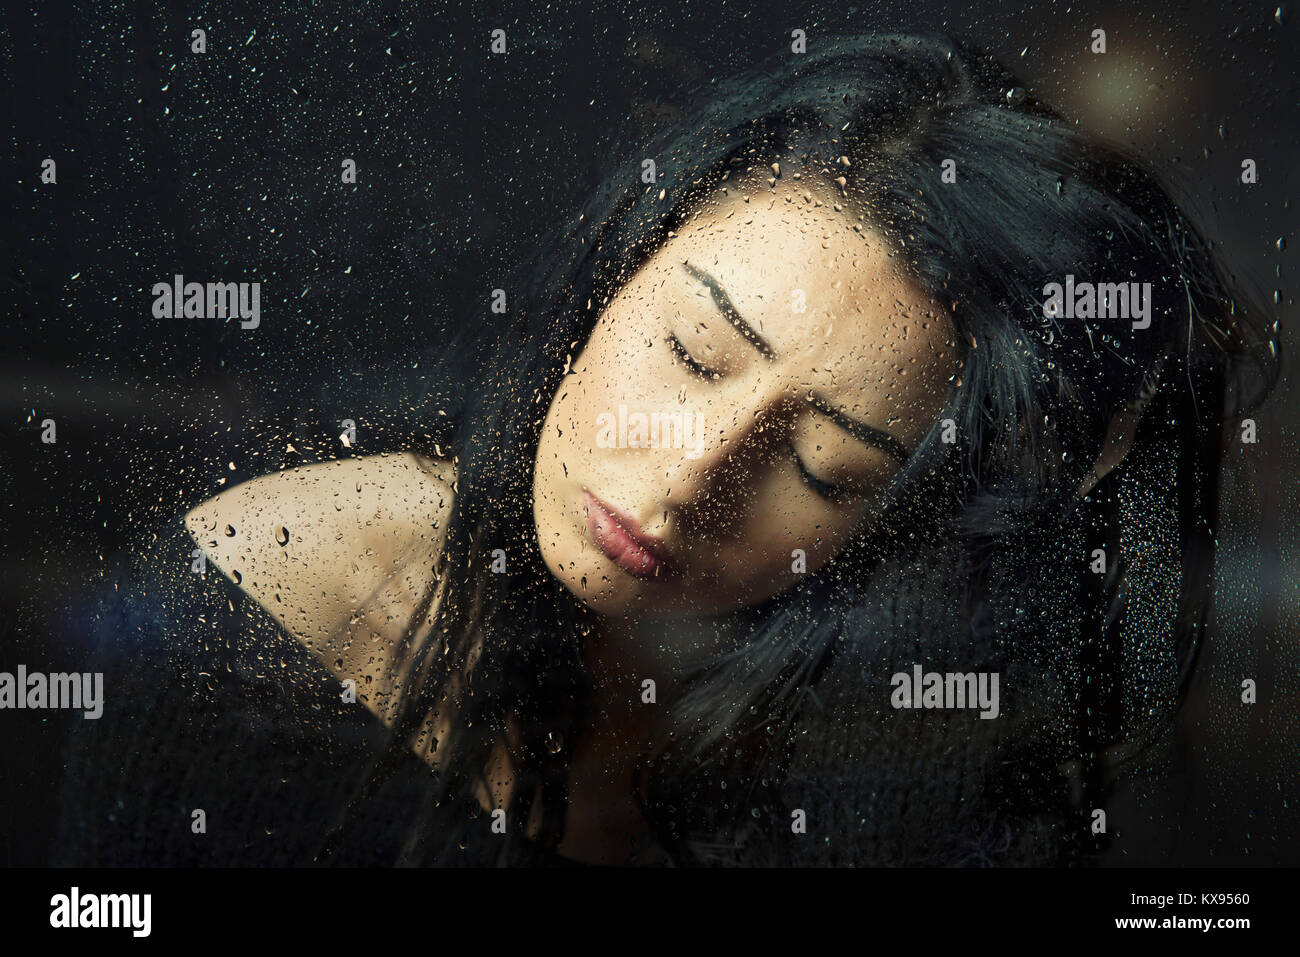 Unhappy depressed sad Woman eyes closed  tearful hand in hair sitting at rainy window  closeup cinematic portrait - Stock Image